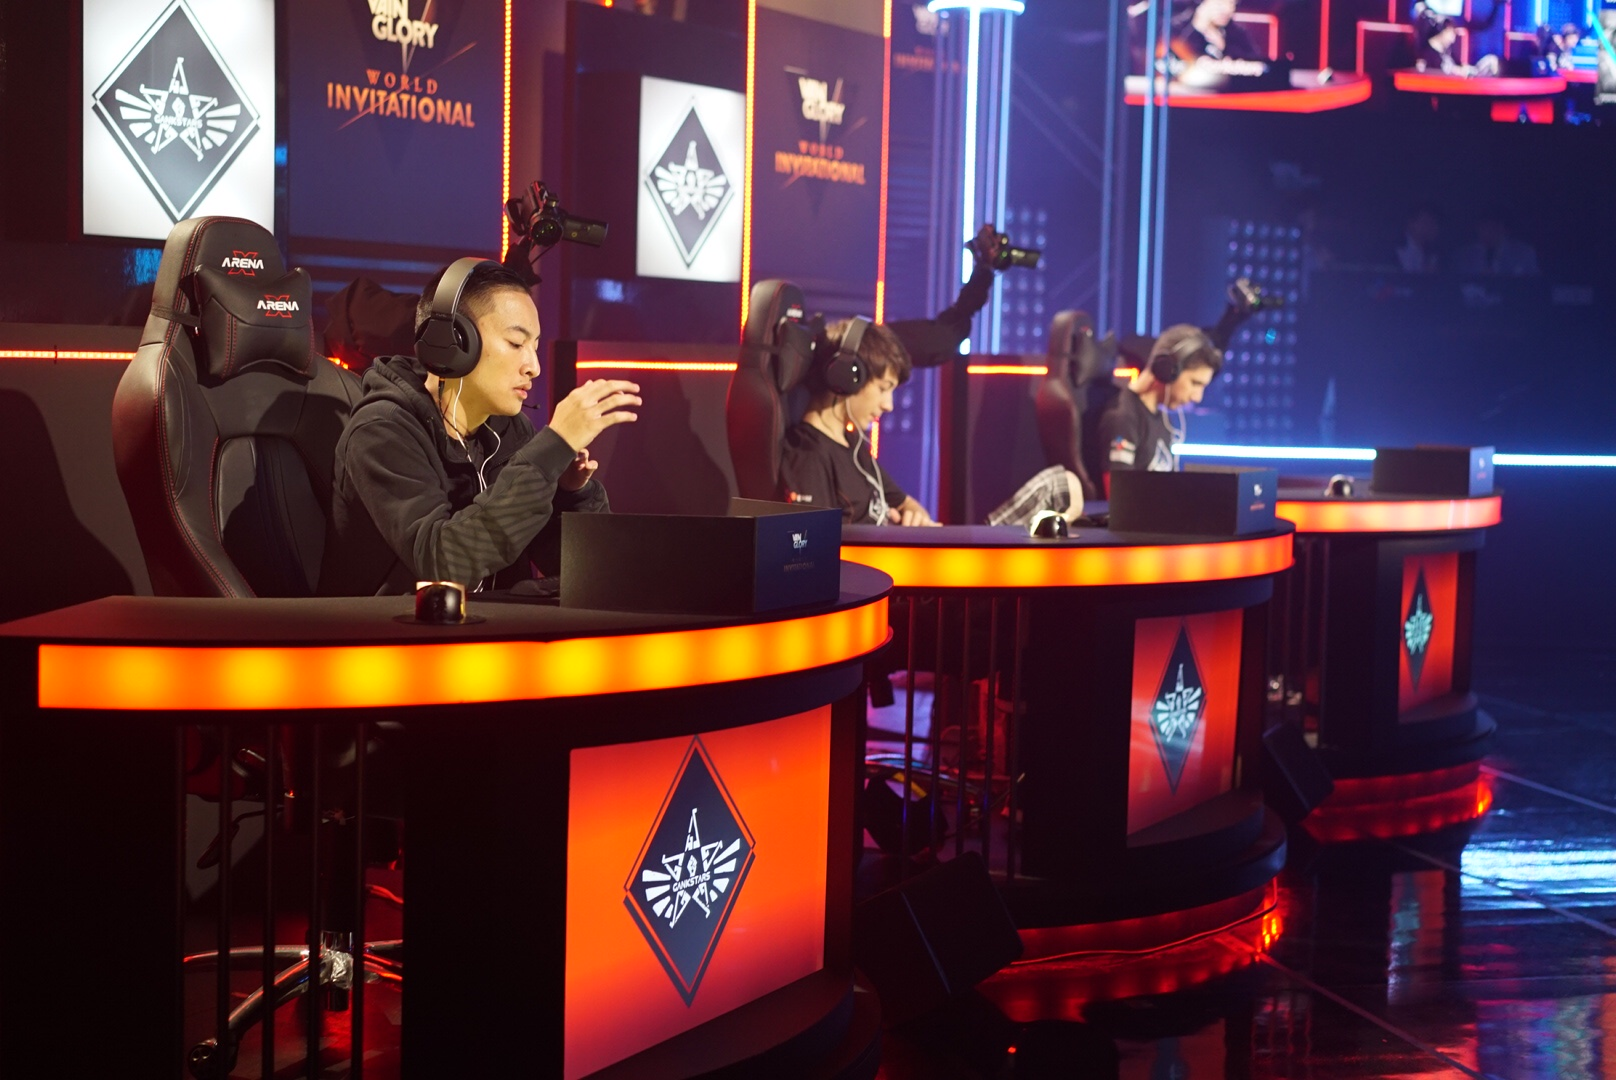 Twelve teams battled for $80,000 in Korea on the mobile eSports title, Vainglory.